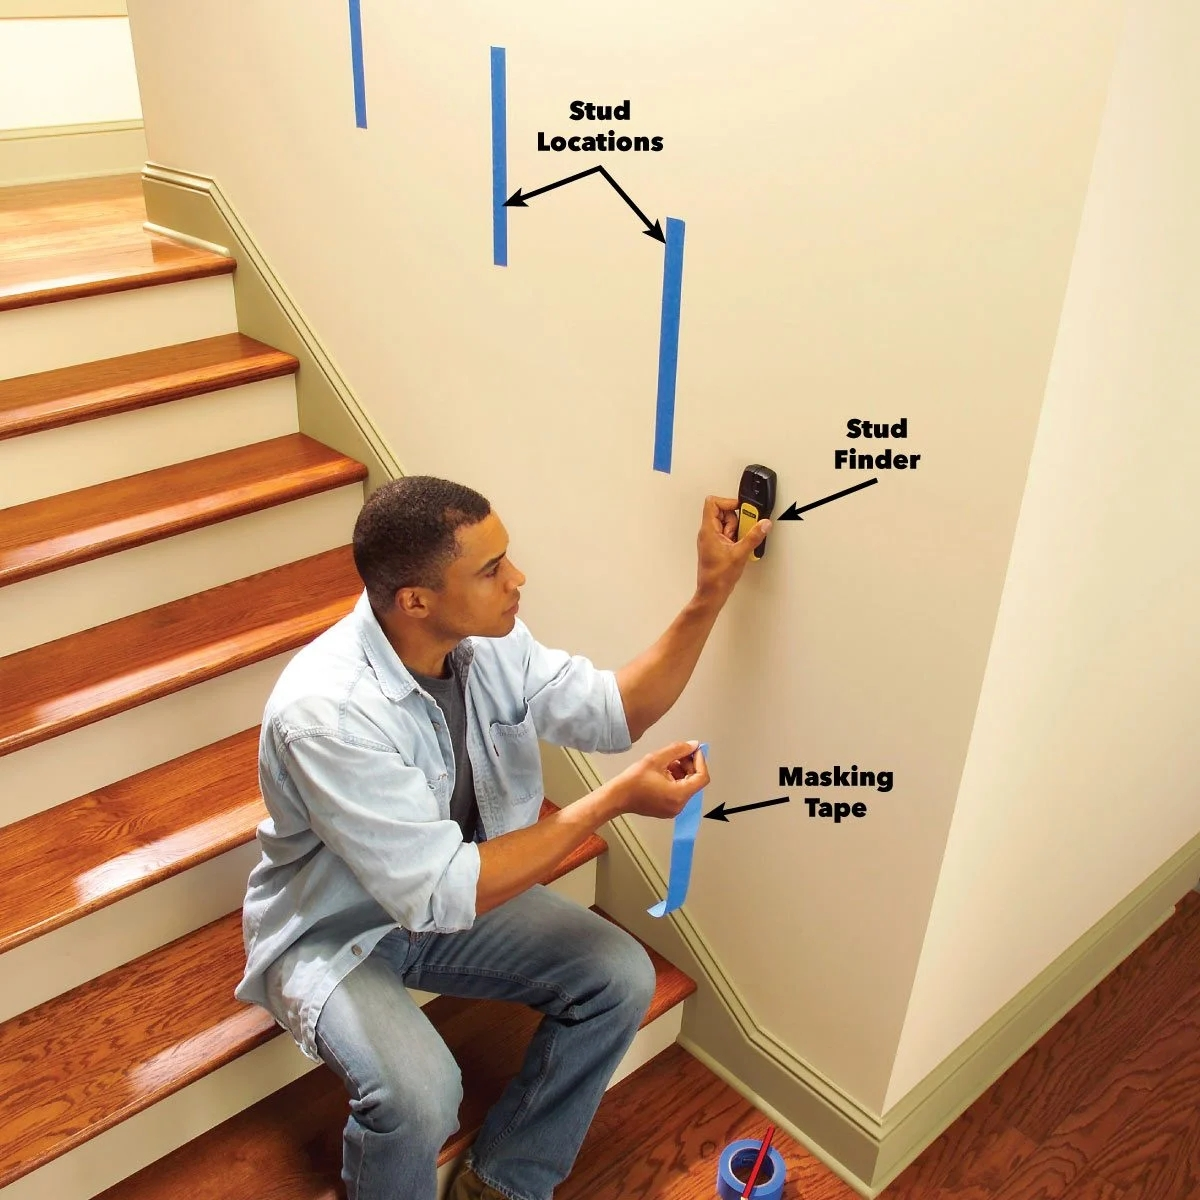 Install A New Stair Handrail | Outdoor Stair Railing Installers Near Me | Transitional Handrail | Cable Railing | Glass Railing | Porch Railing Kits | Vinyl Railing